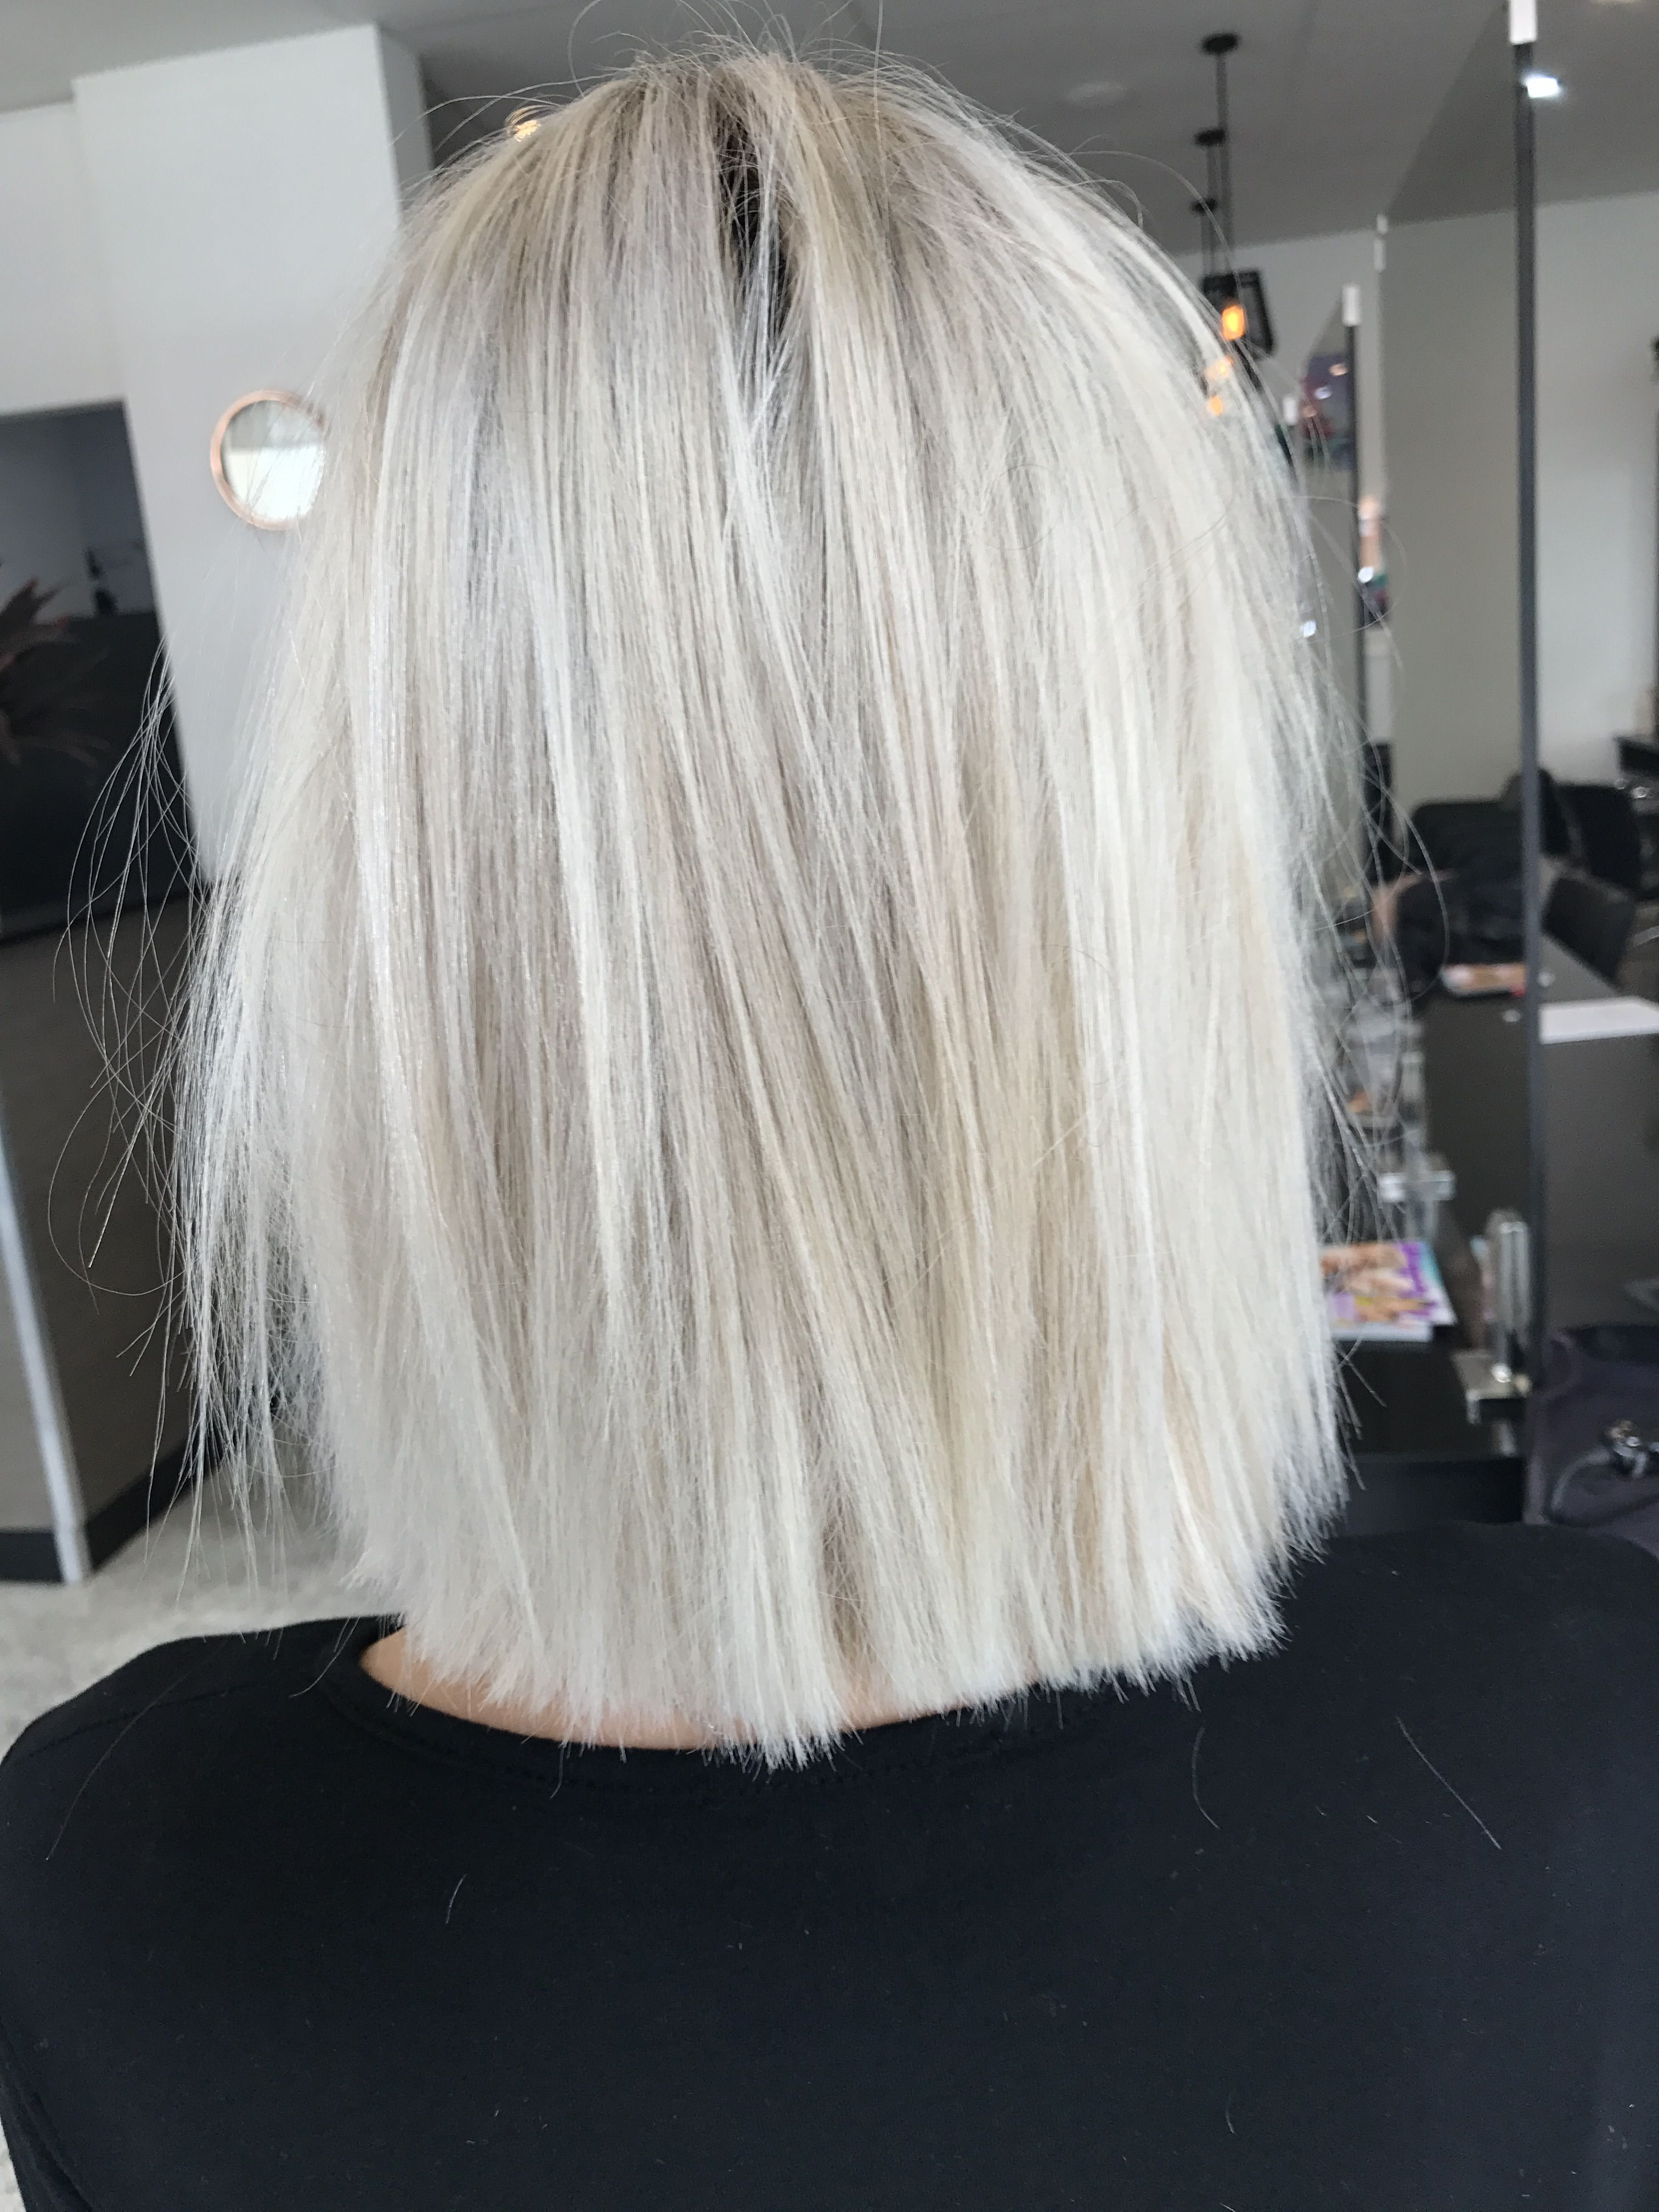 Pin On Lob Hairstyle